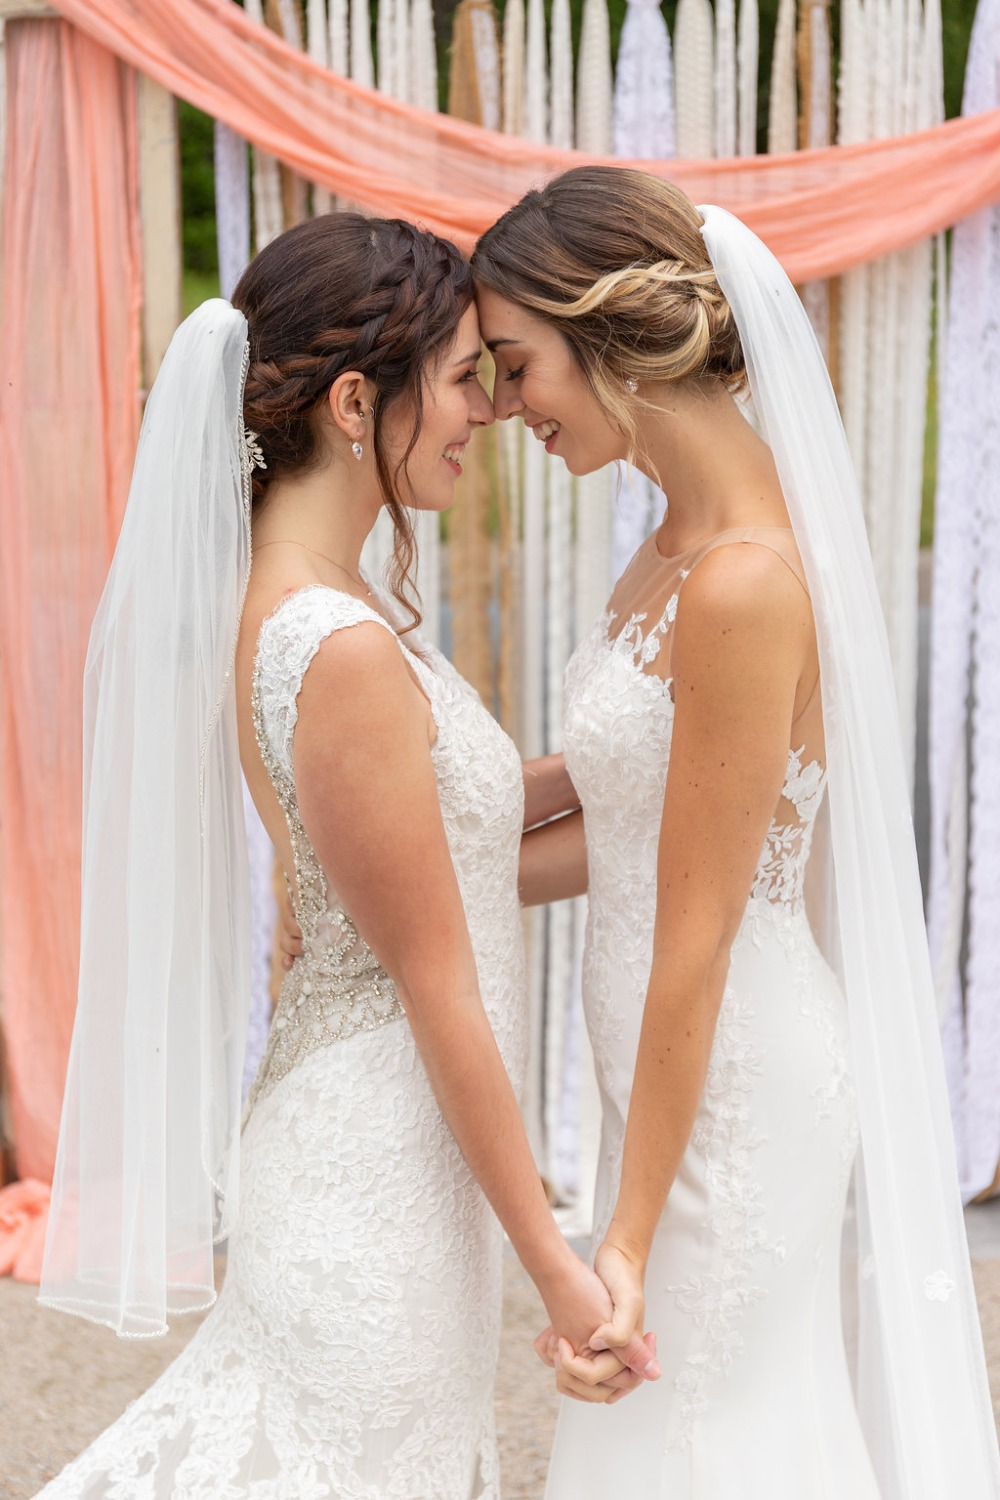 Two brides are better than one